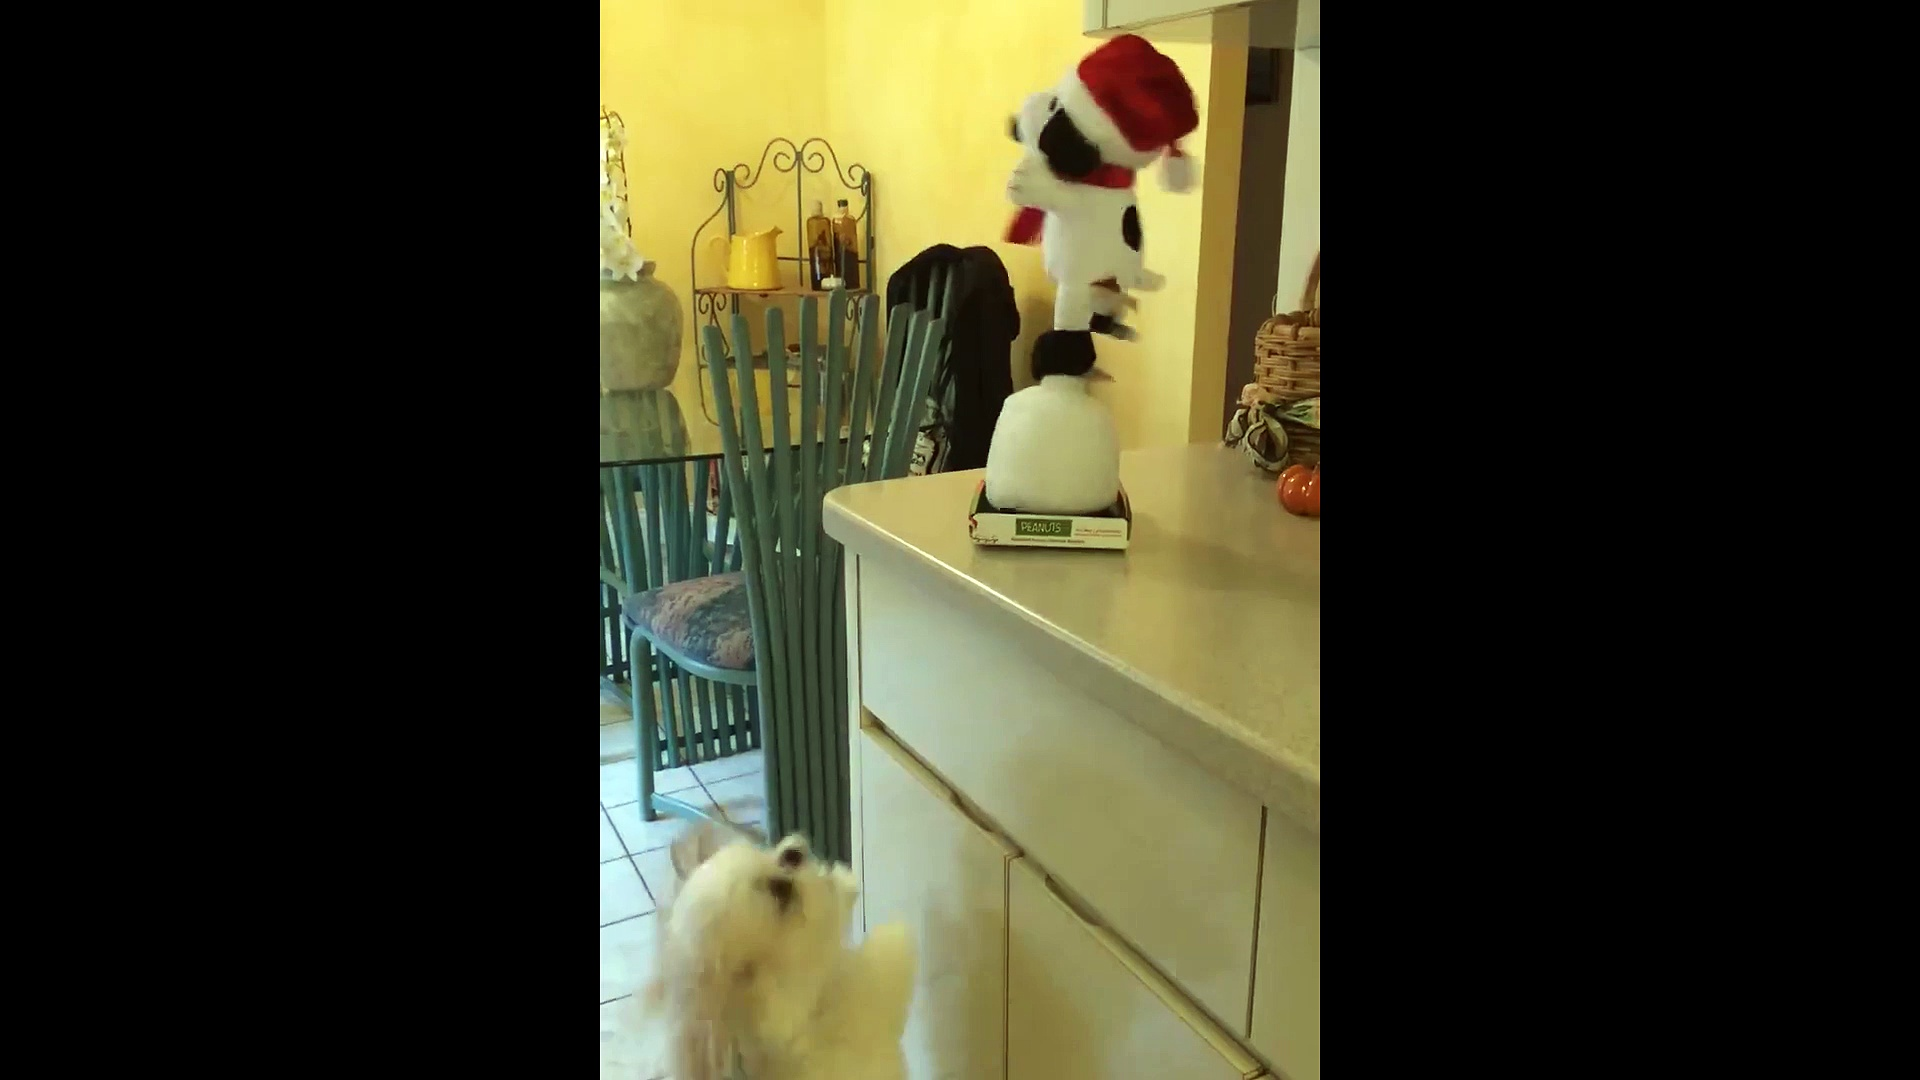 Dog Dancing with Toy Dog